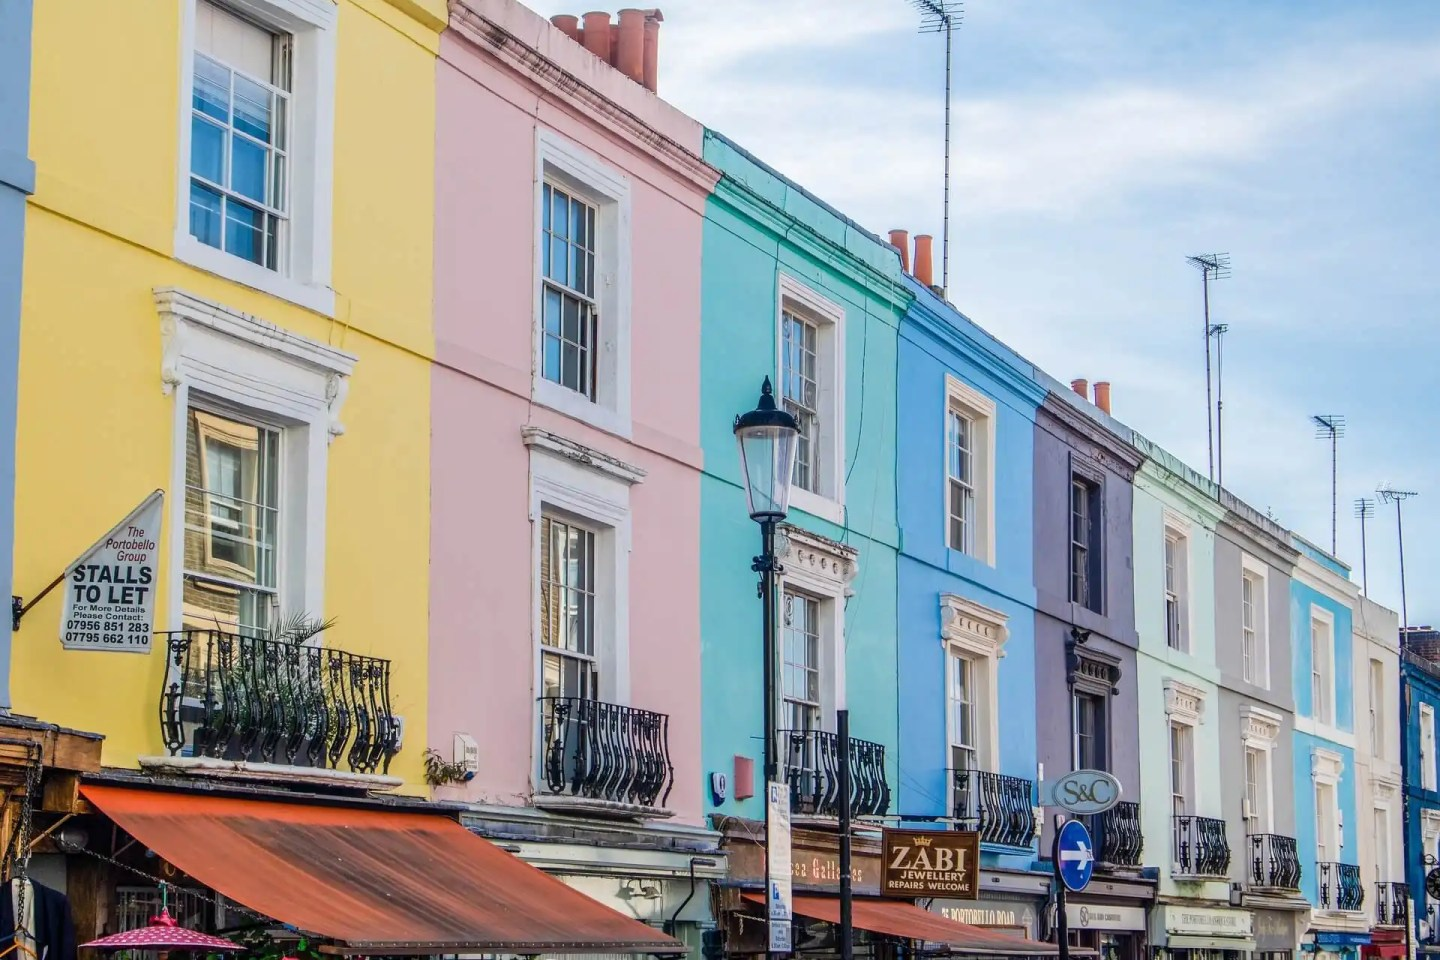 Houses in Portobello Road